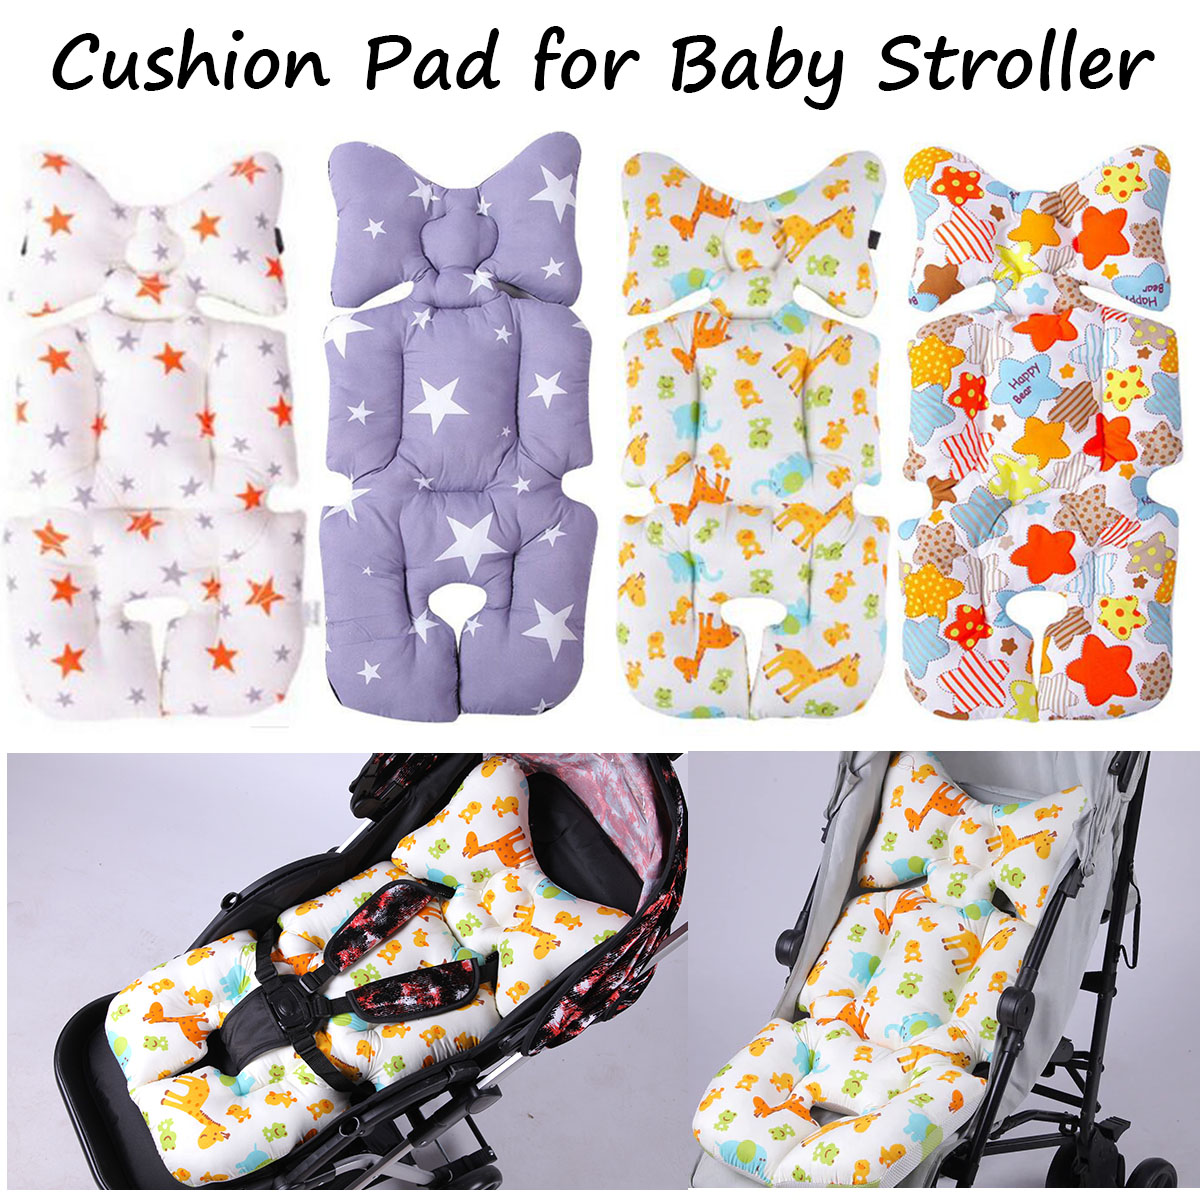 Baby Cartoon Animal Stroller Cushion Seat Cover Baby Diaper Pad Seat Pad Cotton Baby Stroller Mat Mattress Pram Stroller Strollers Accessories